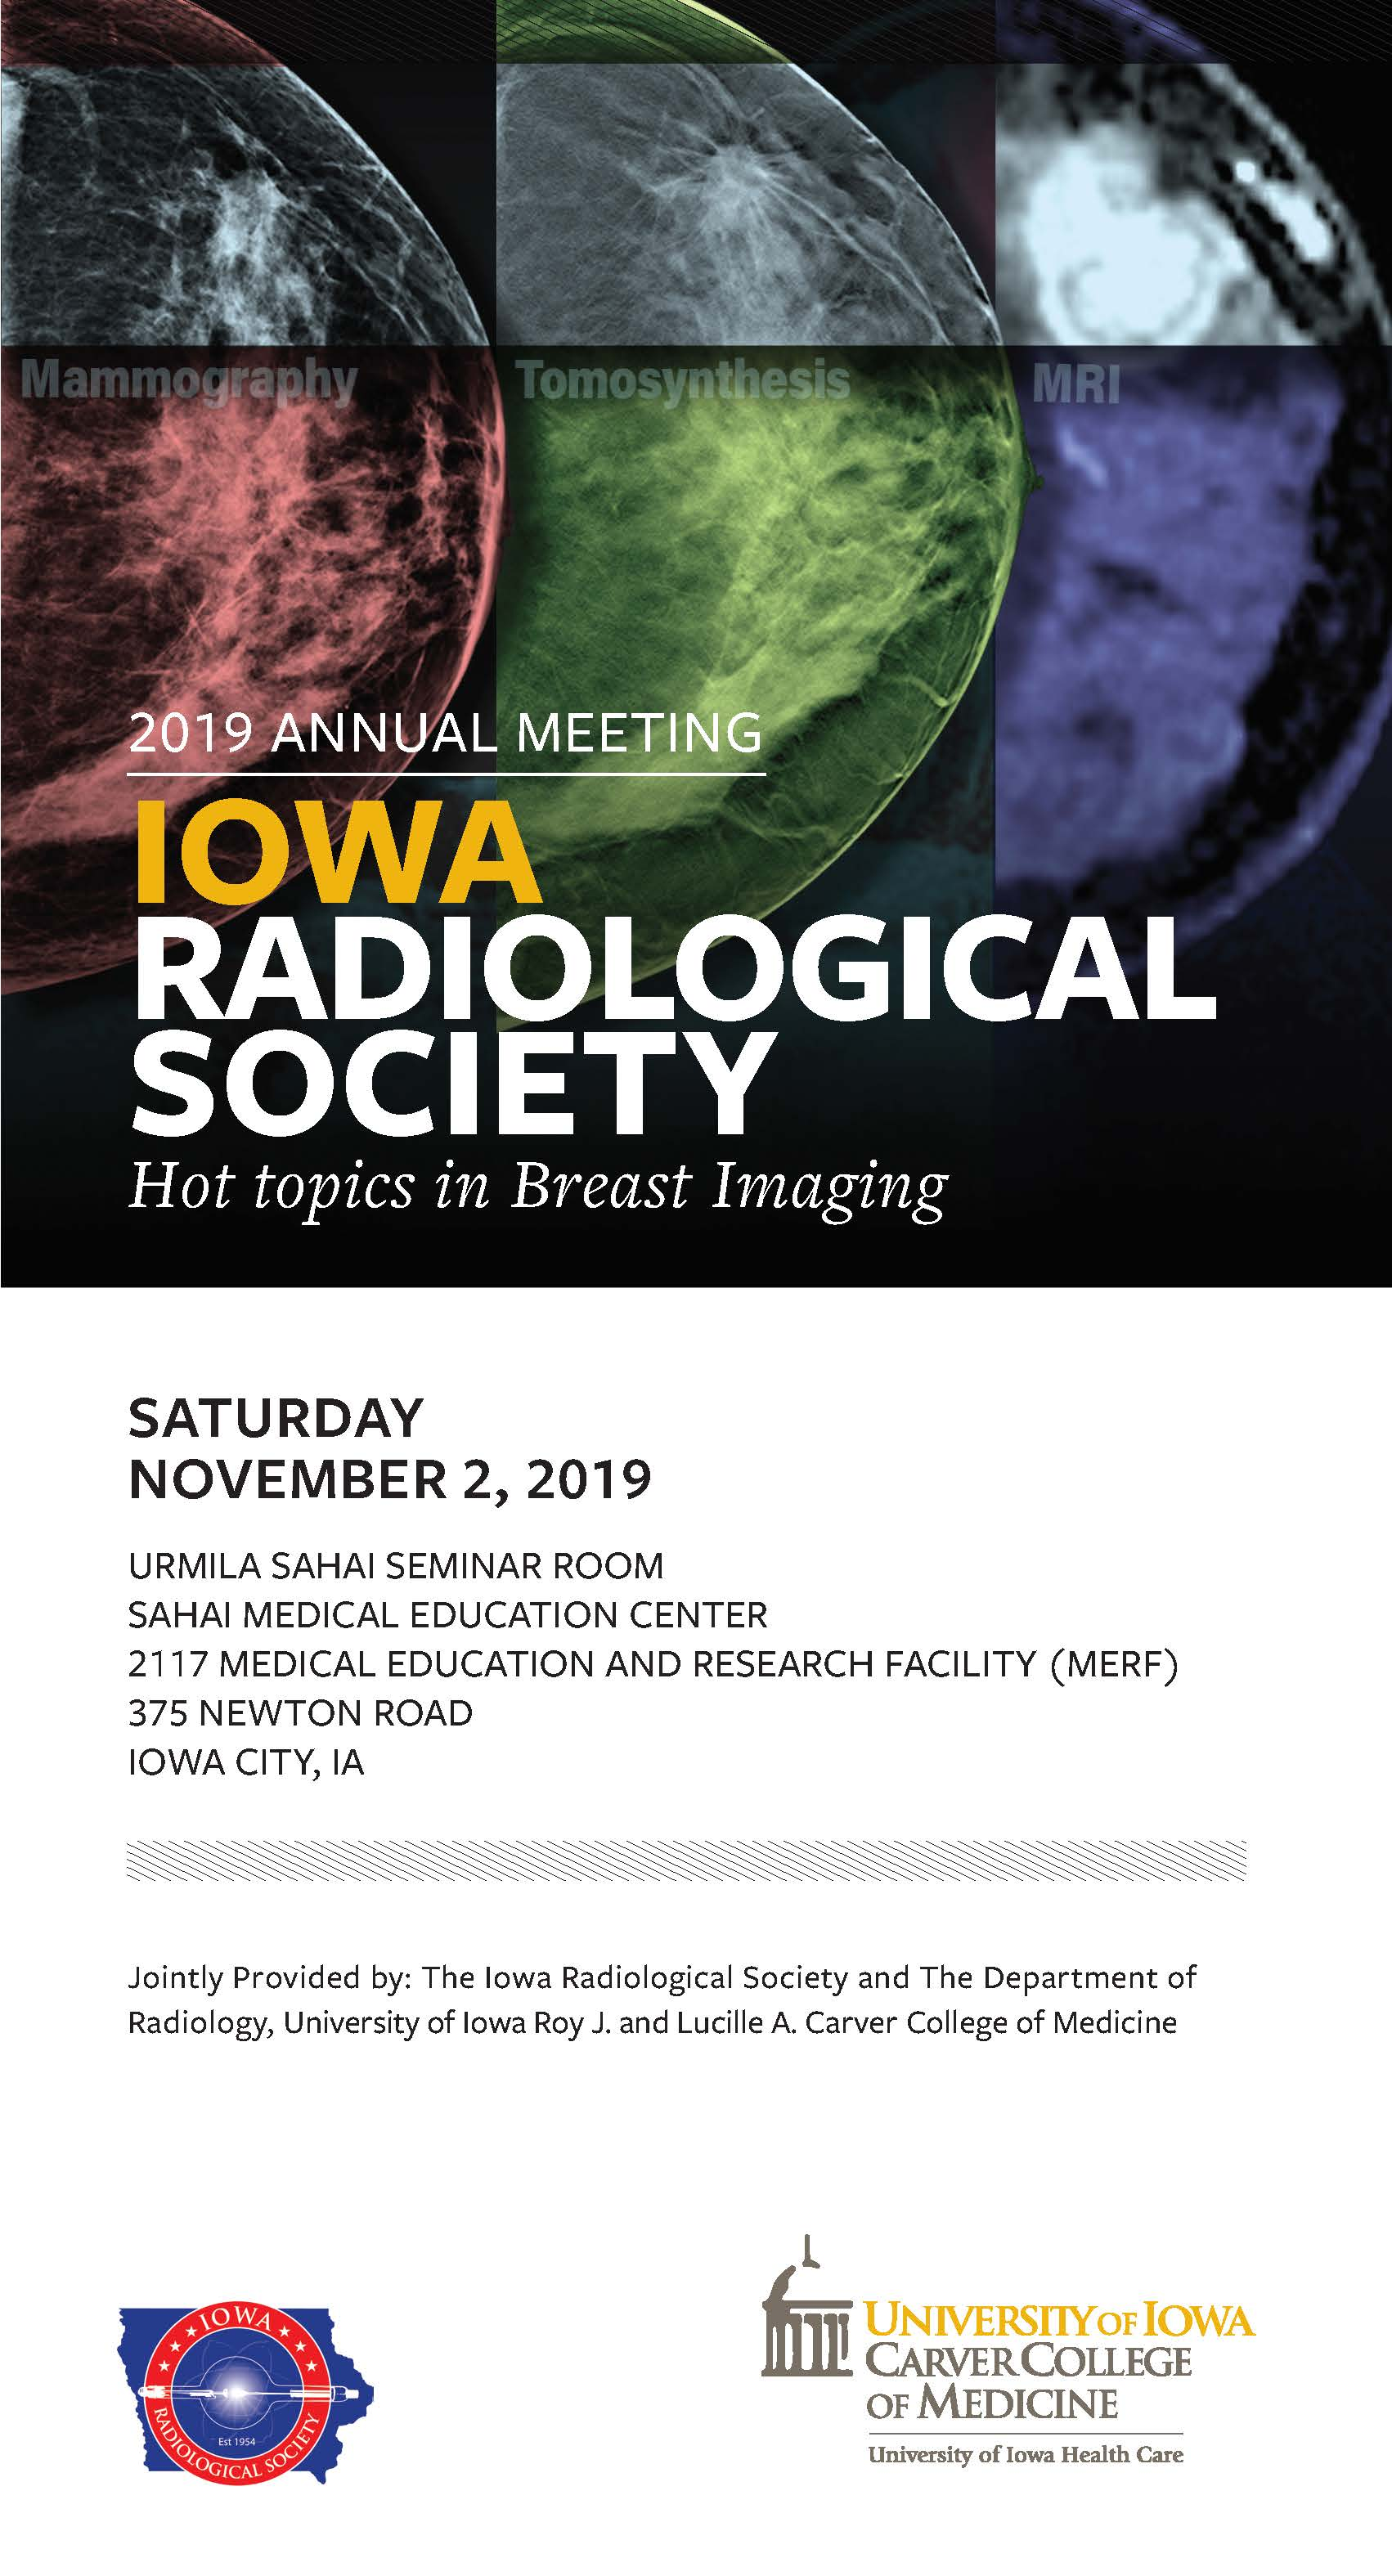 Iowa Radiological Society Annual Meeting 2019 Banner